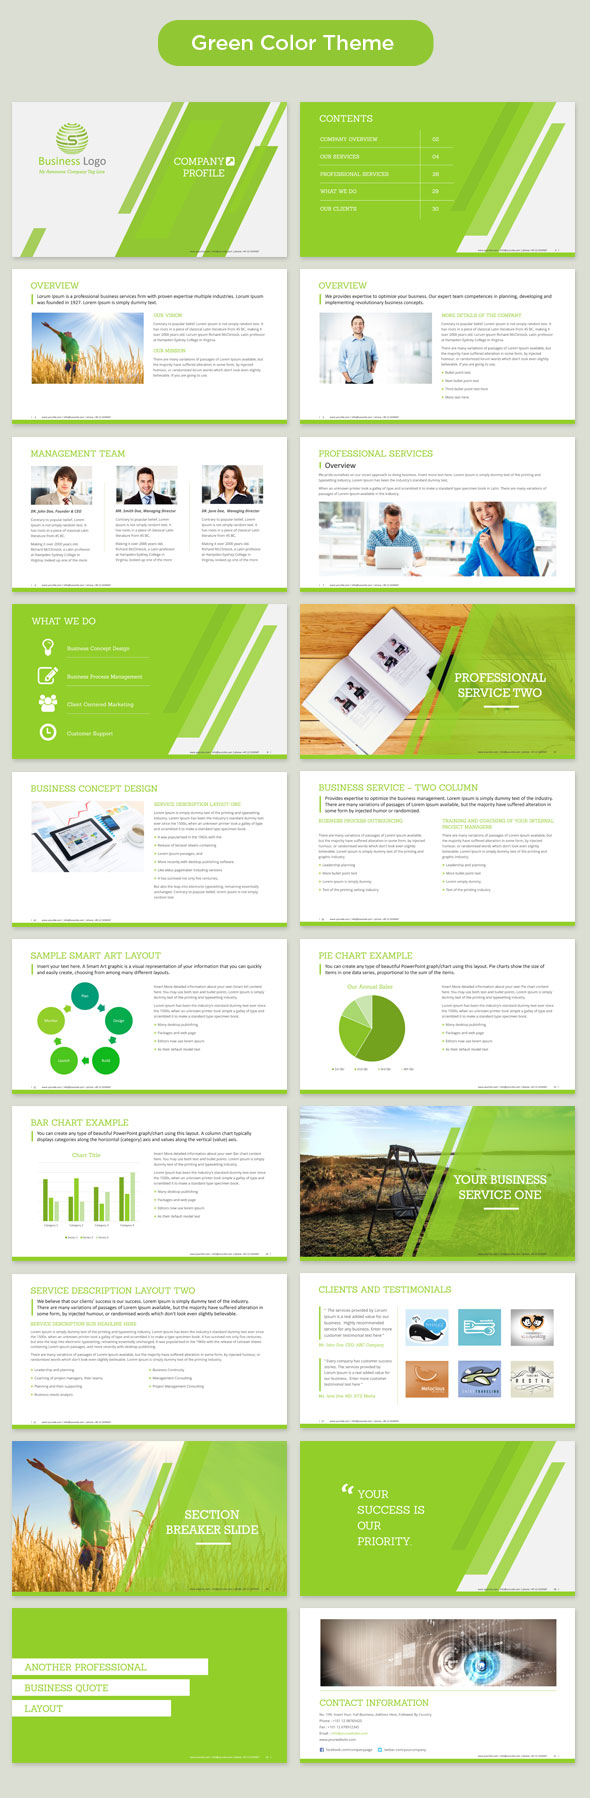 Corporate Profile Powerpoint Template Green  Format Of Company Profile